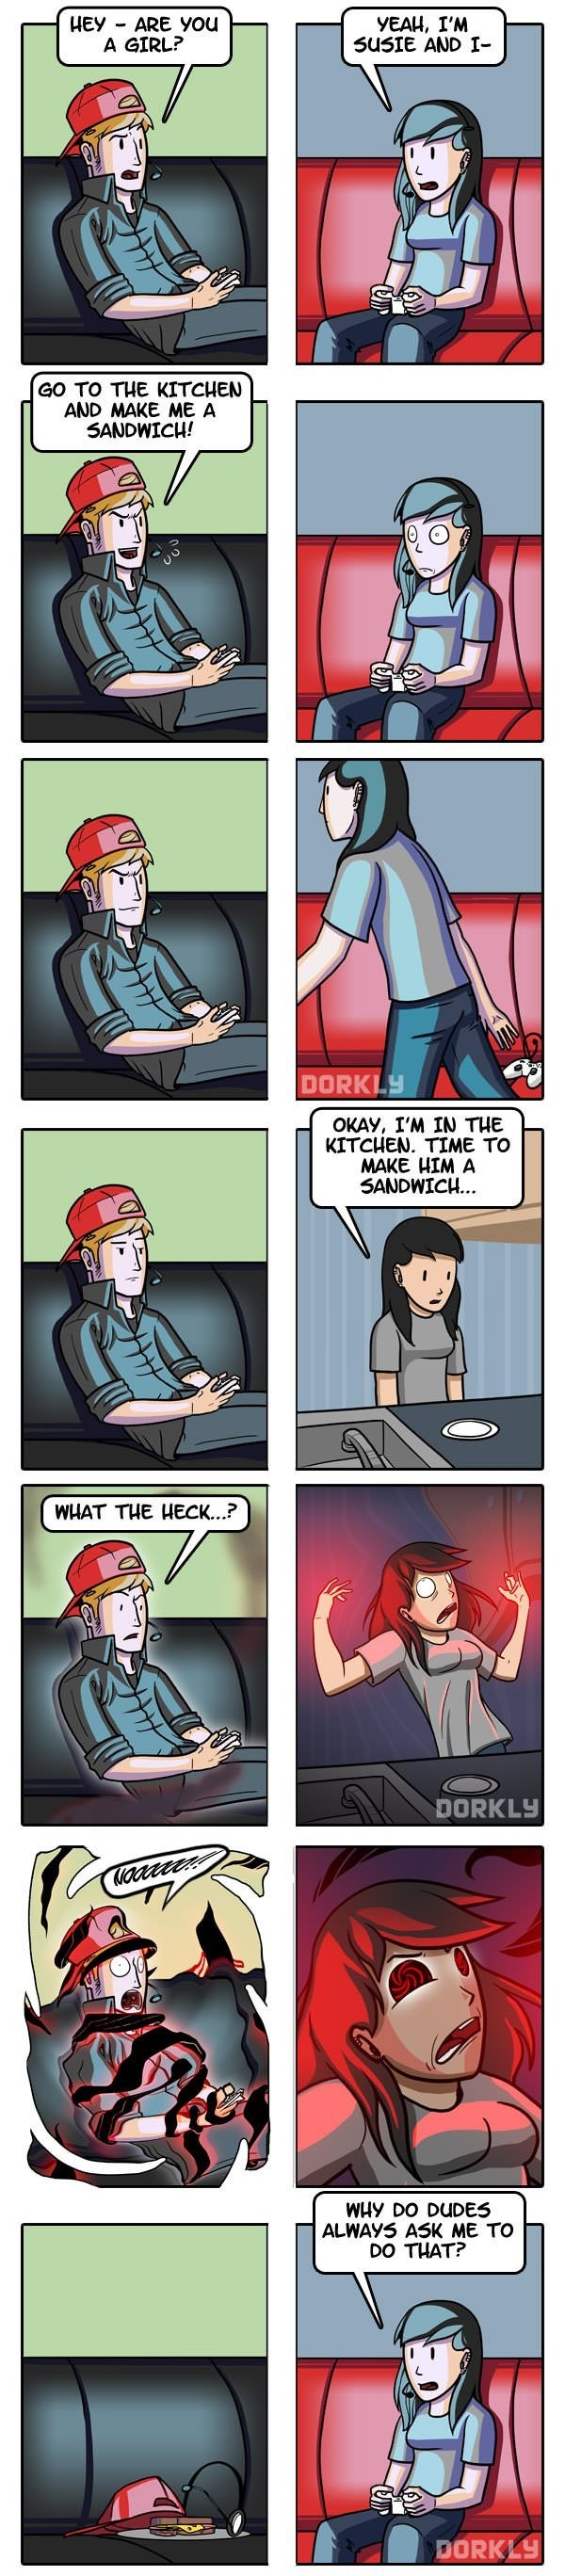 gaming meme of a comic that asked a girl to make him a sandwich